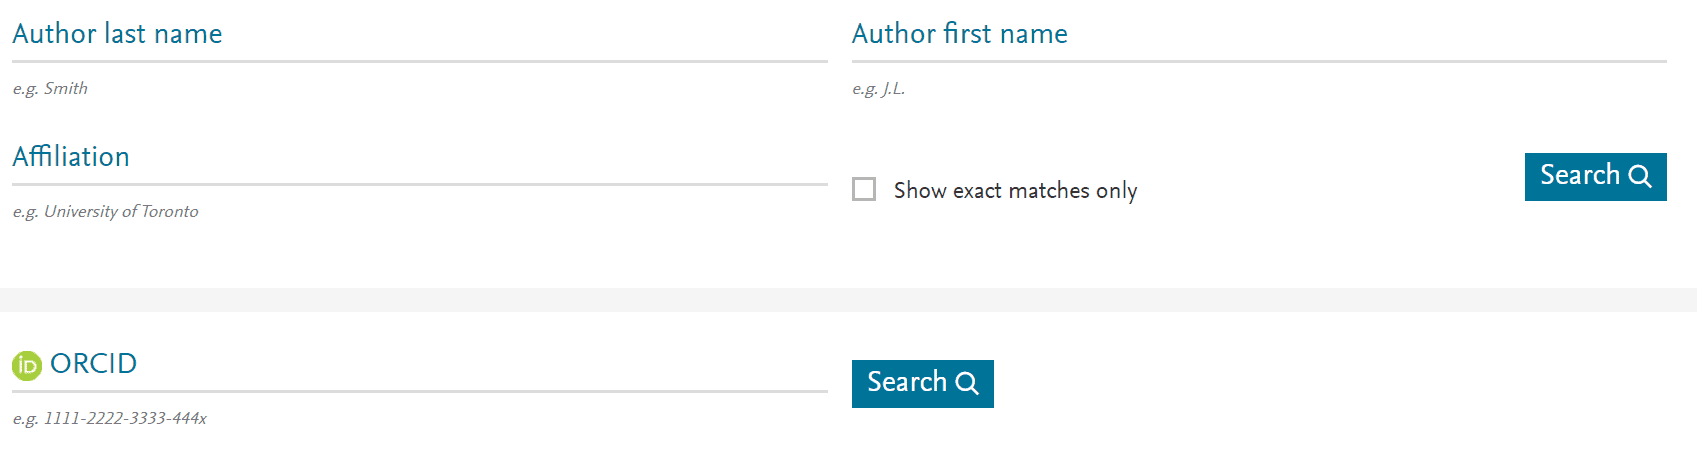 Free author lookup, researchers can search for any author in Scopus